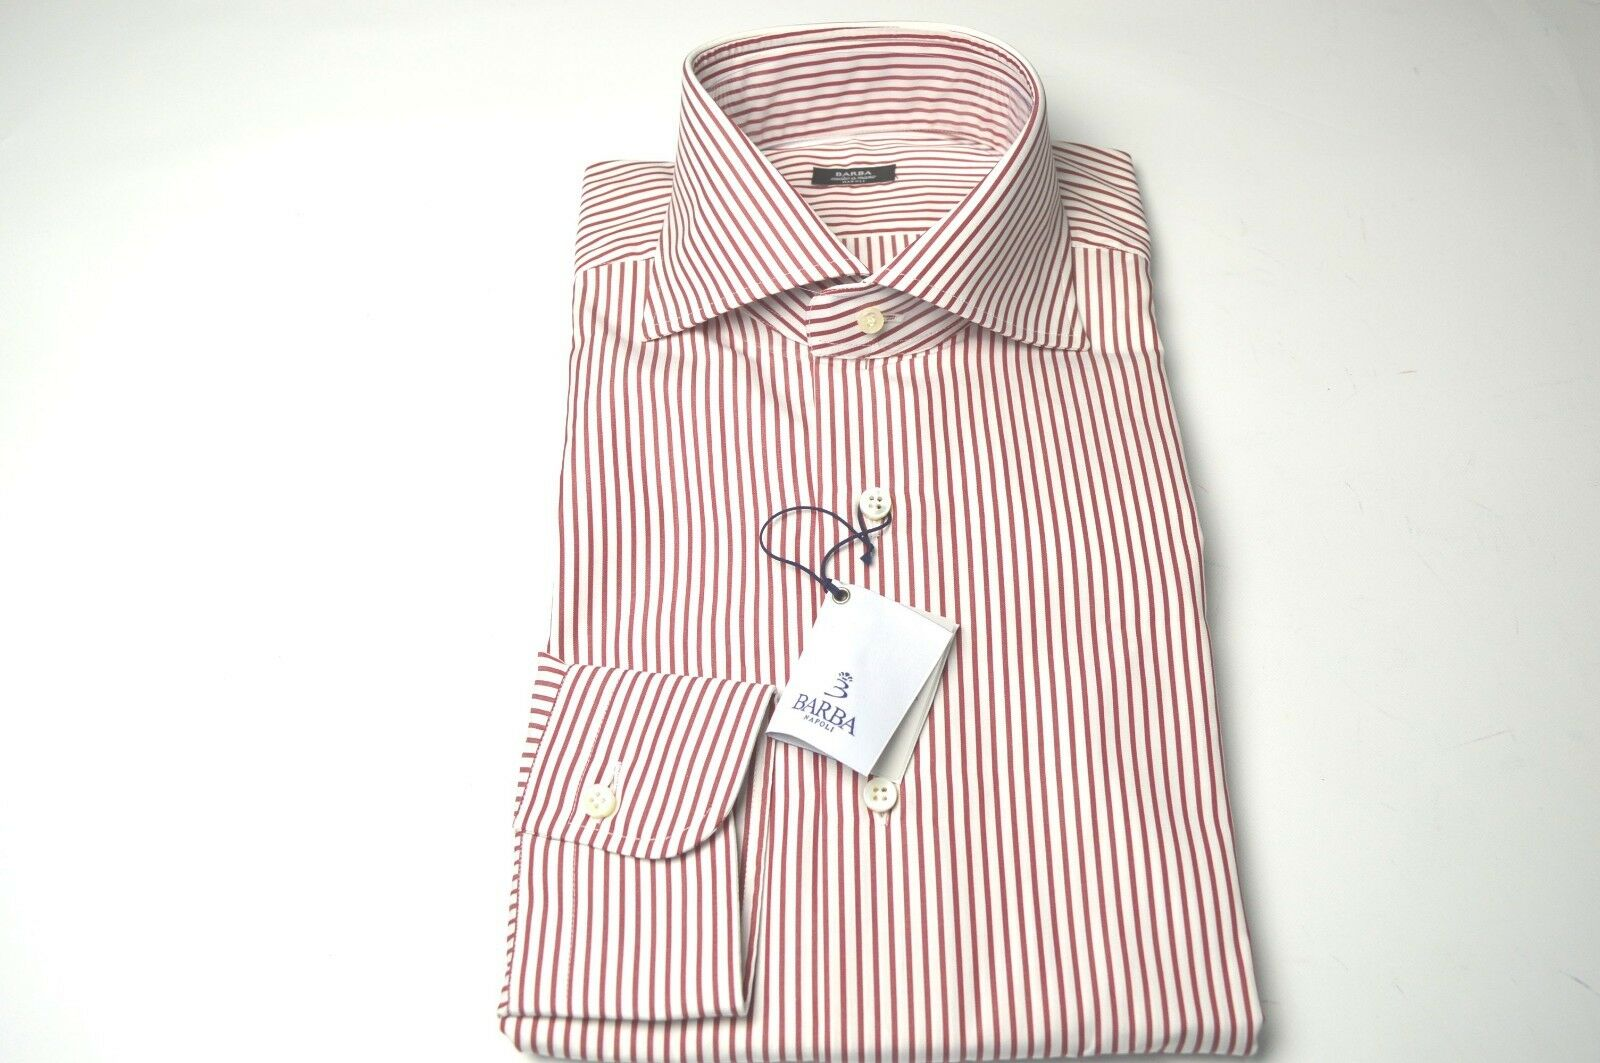 NEW BARBA  Dress SHIRT  100% Cotton Size 15.75  Us 40 Eu  (BA9)